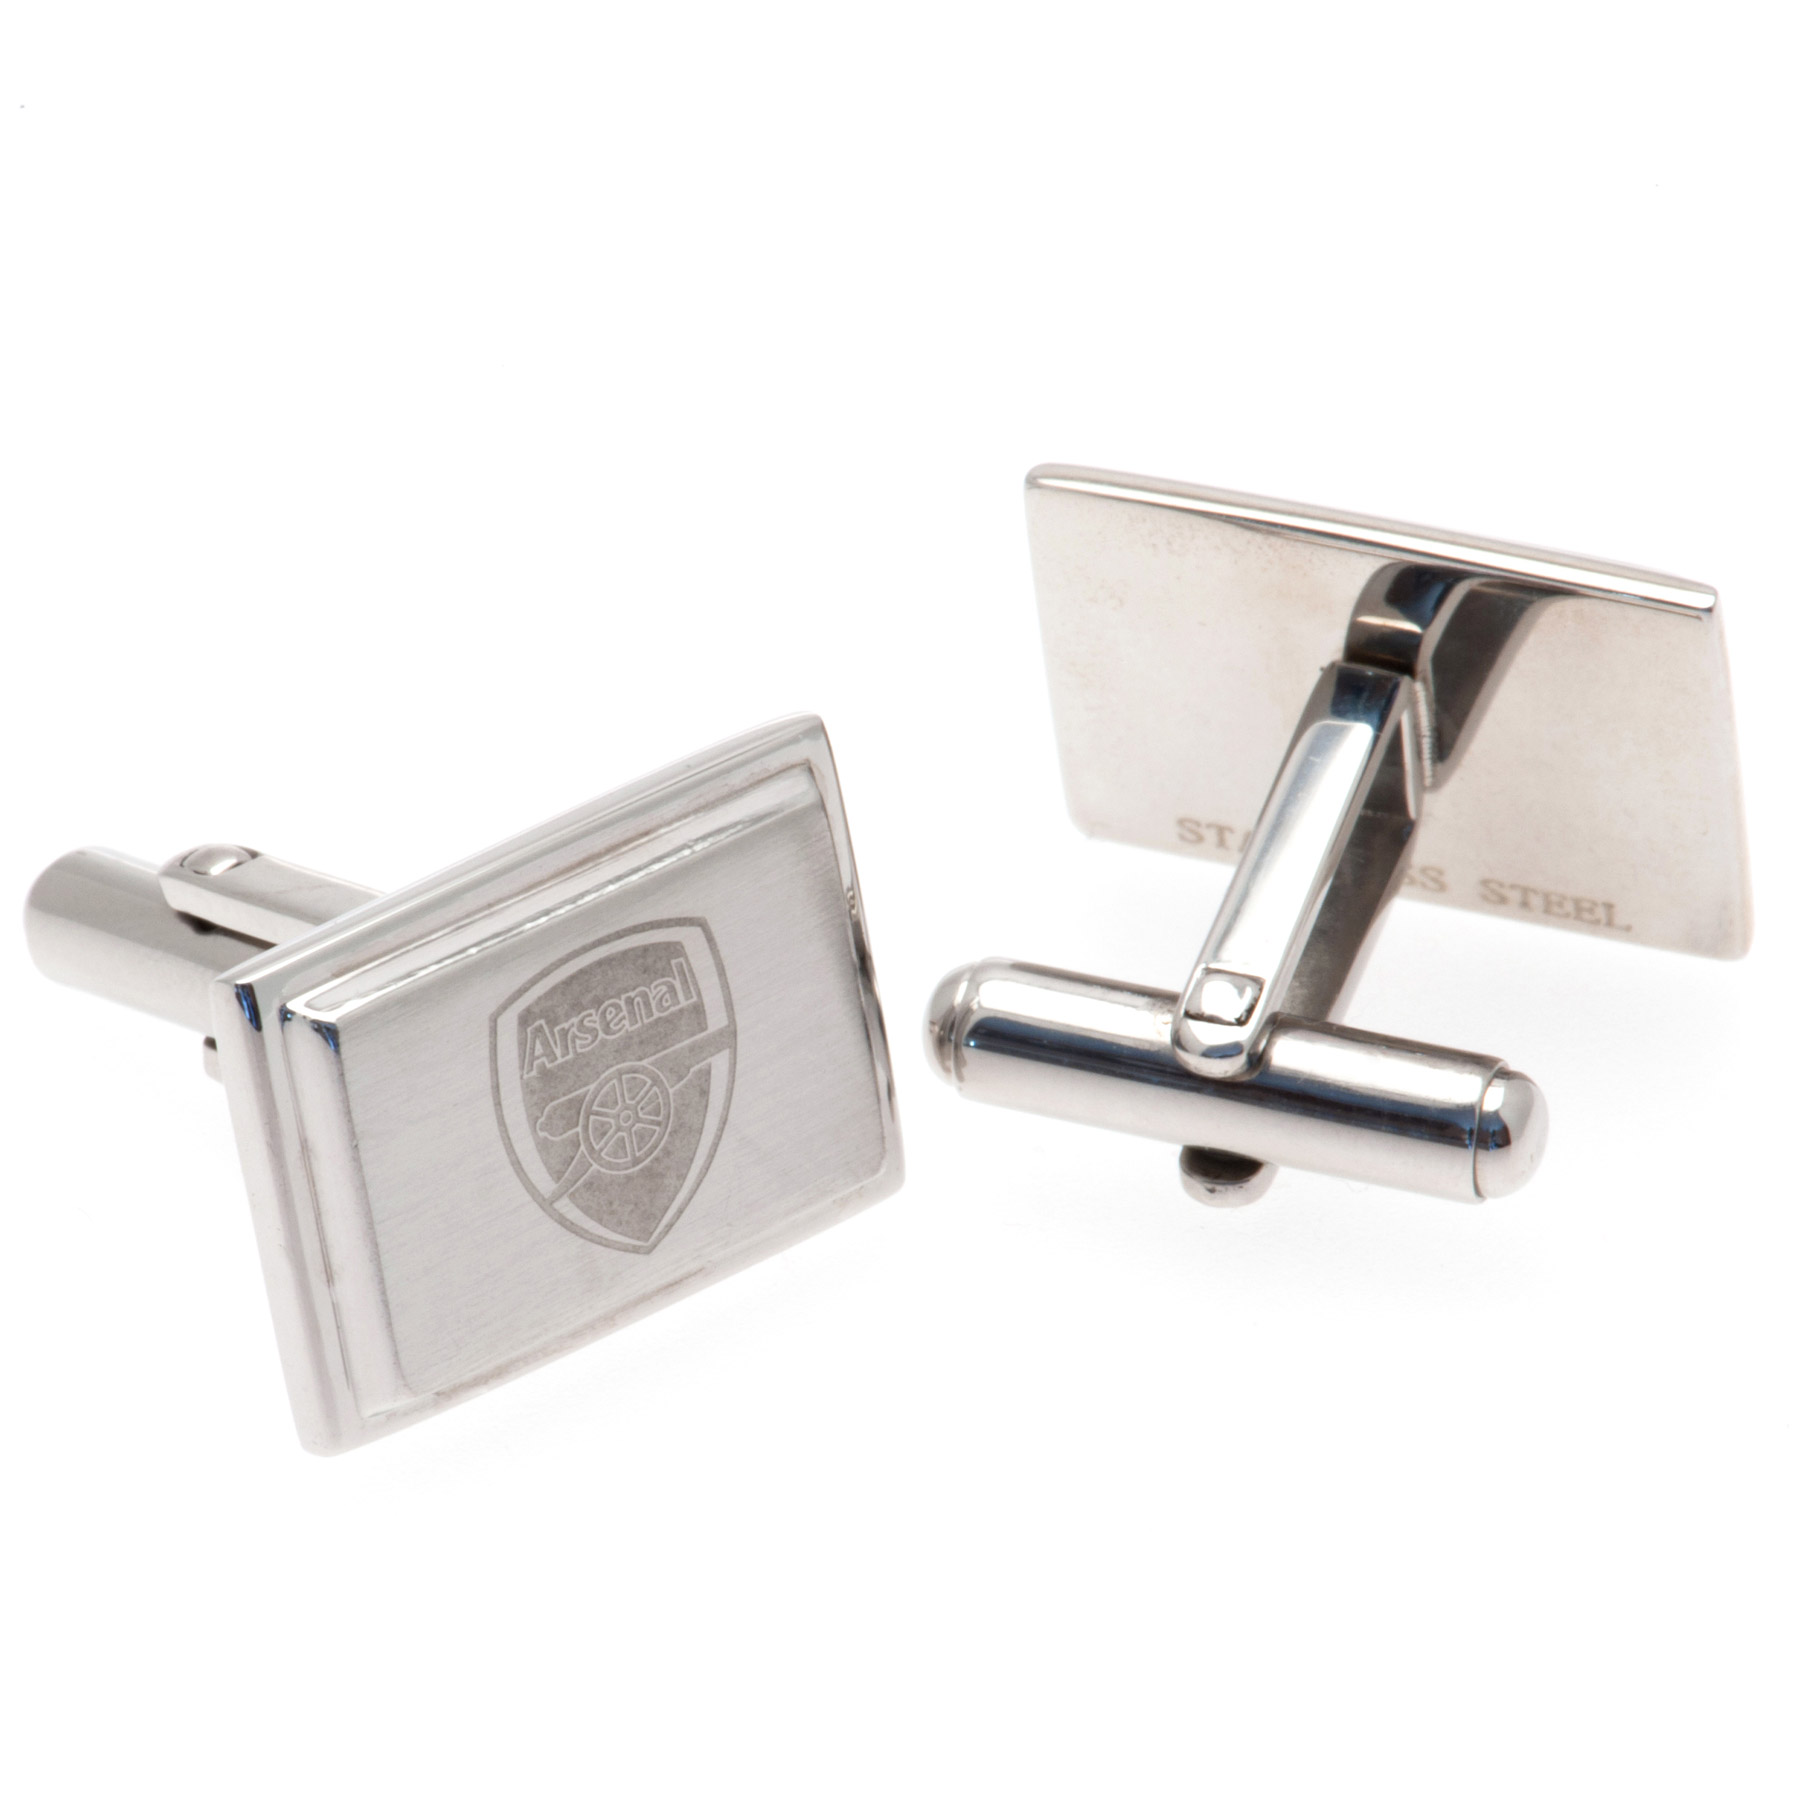 Arsenal Rectangle Crest Cufflinks - Stainless Steel, N/A